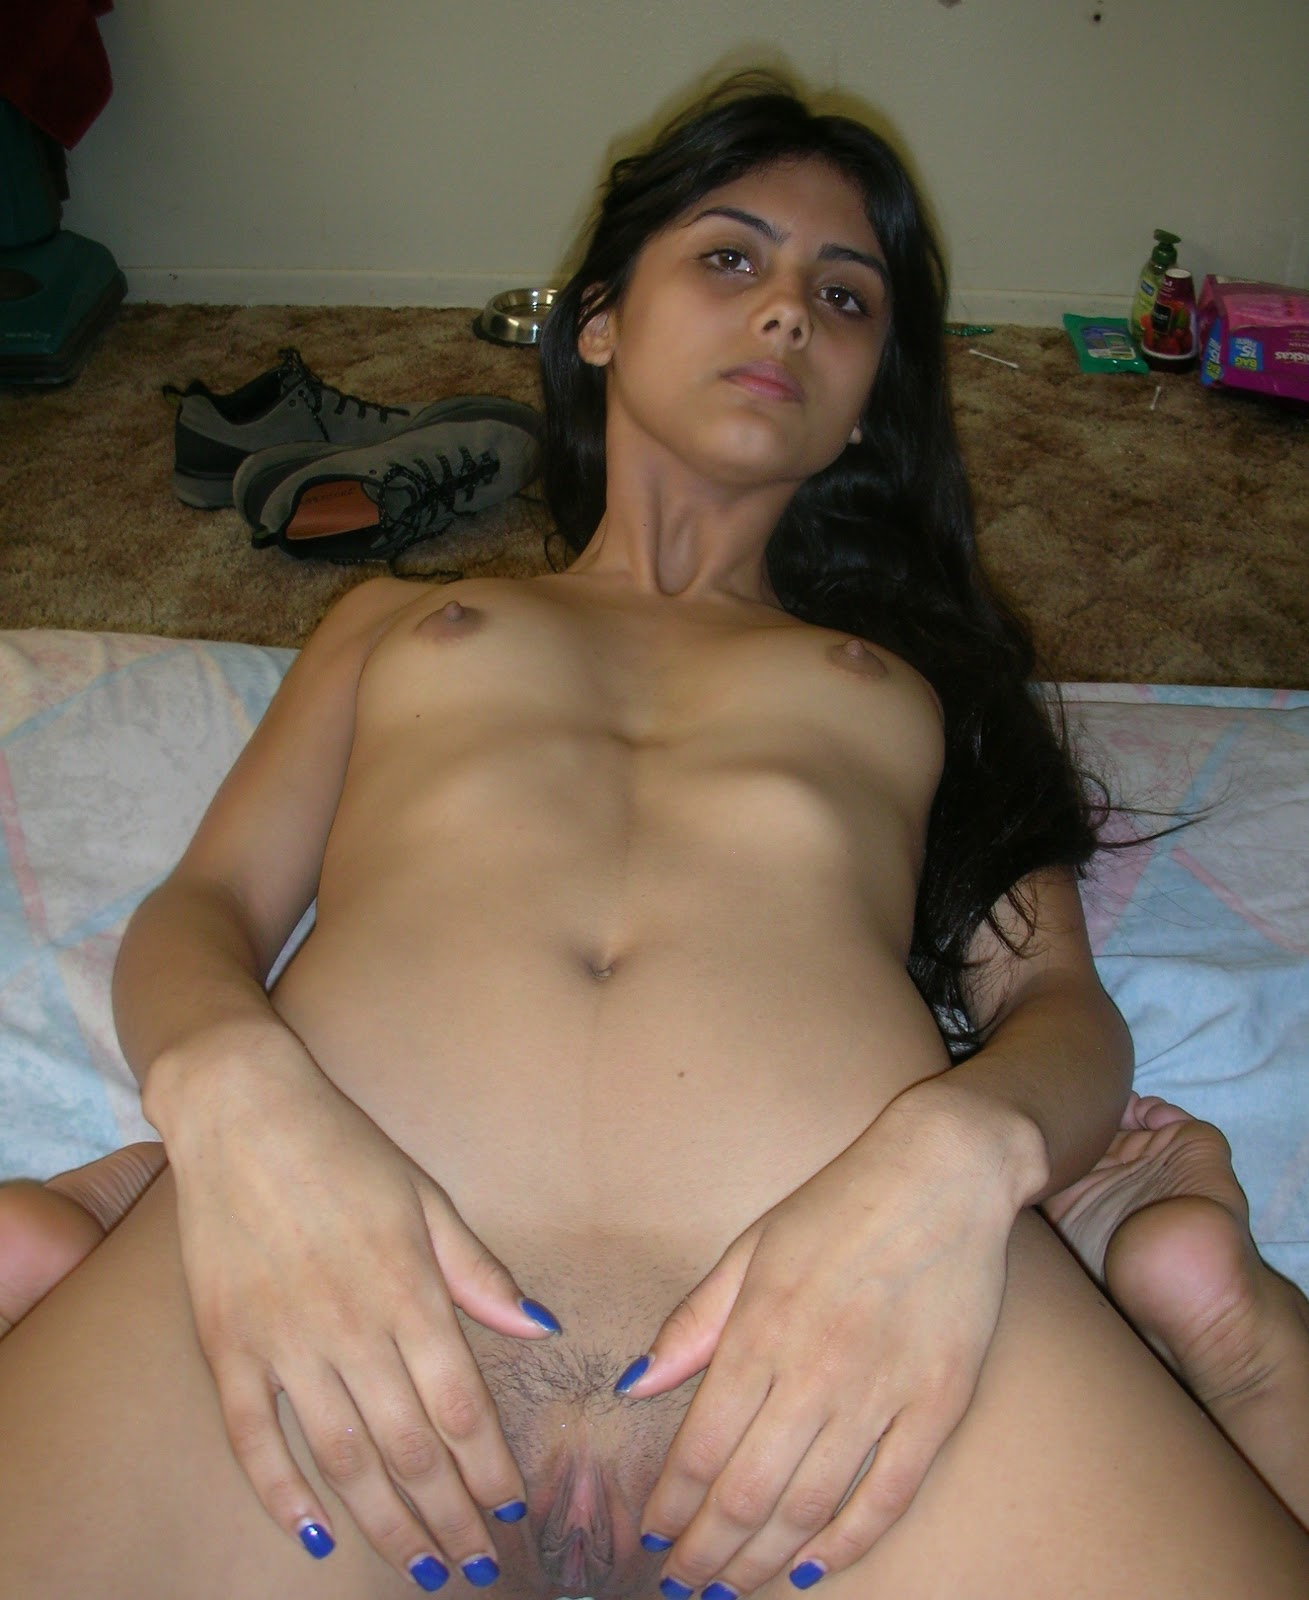 Hot hot naked pakistani girl pictures nurses hospitals